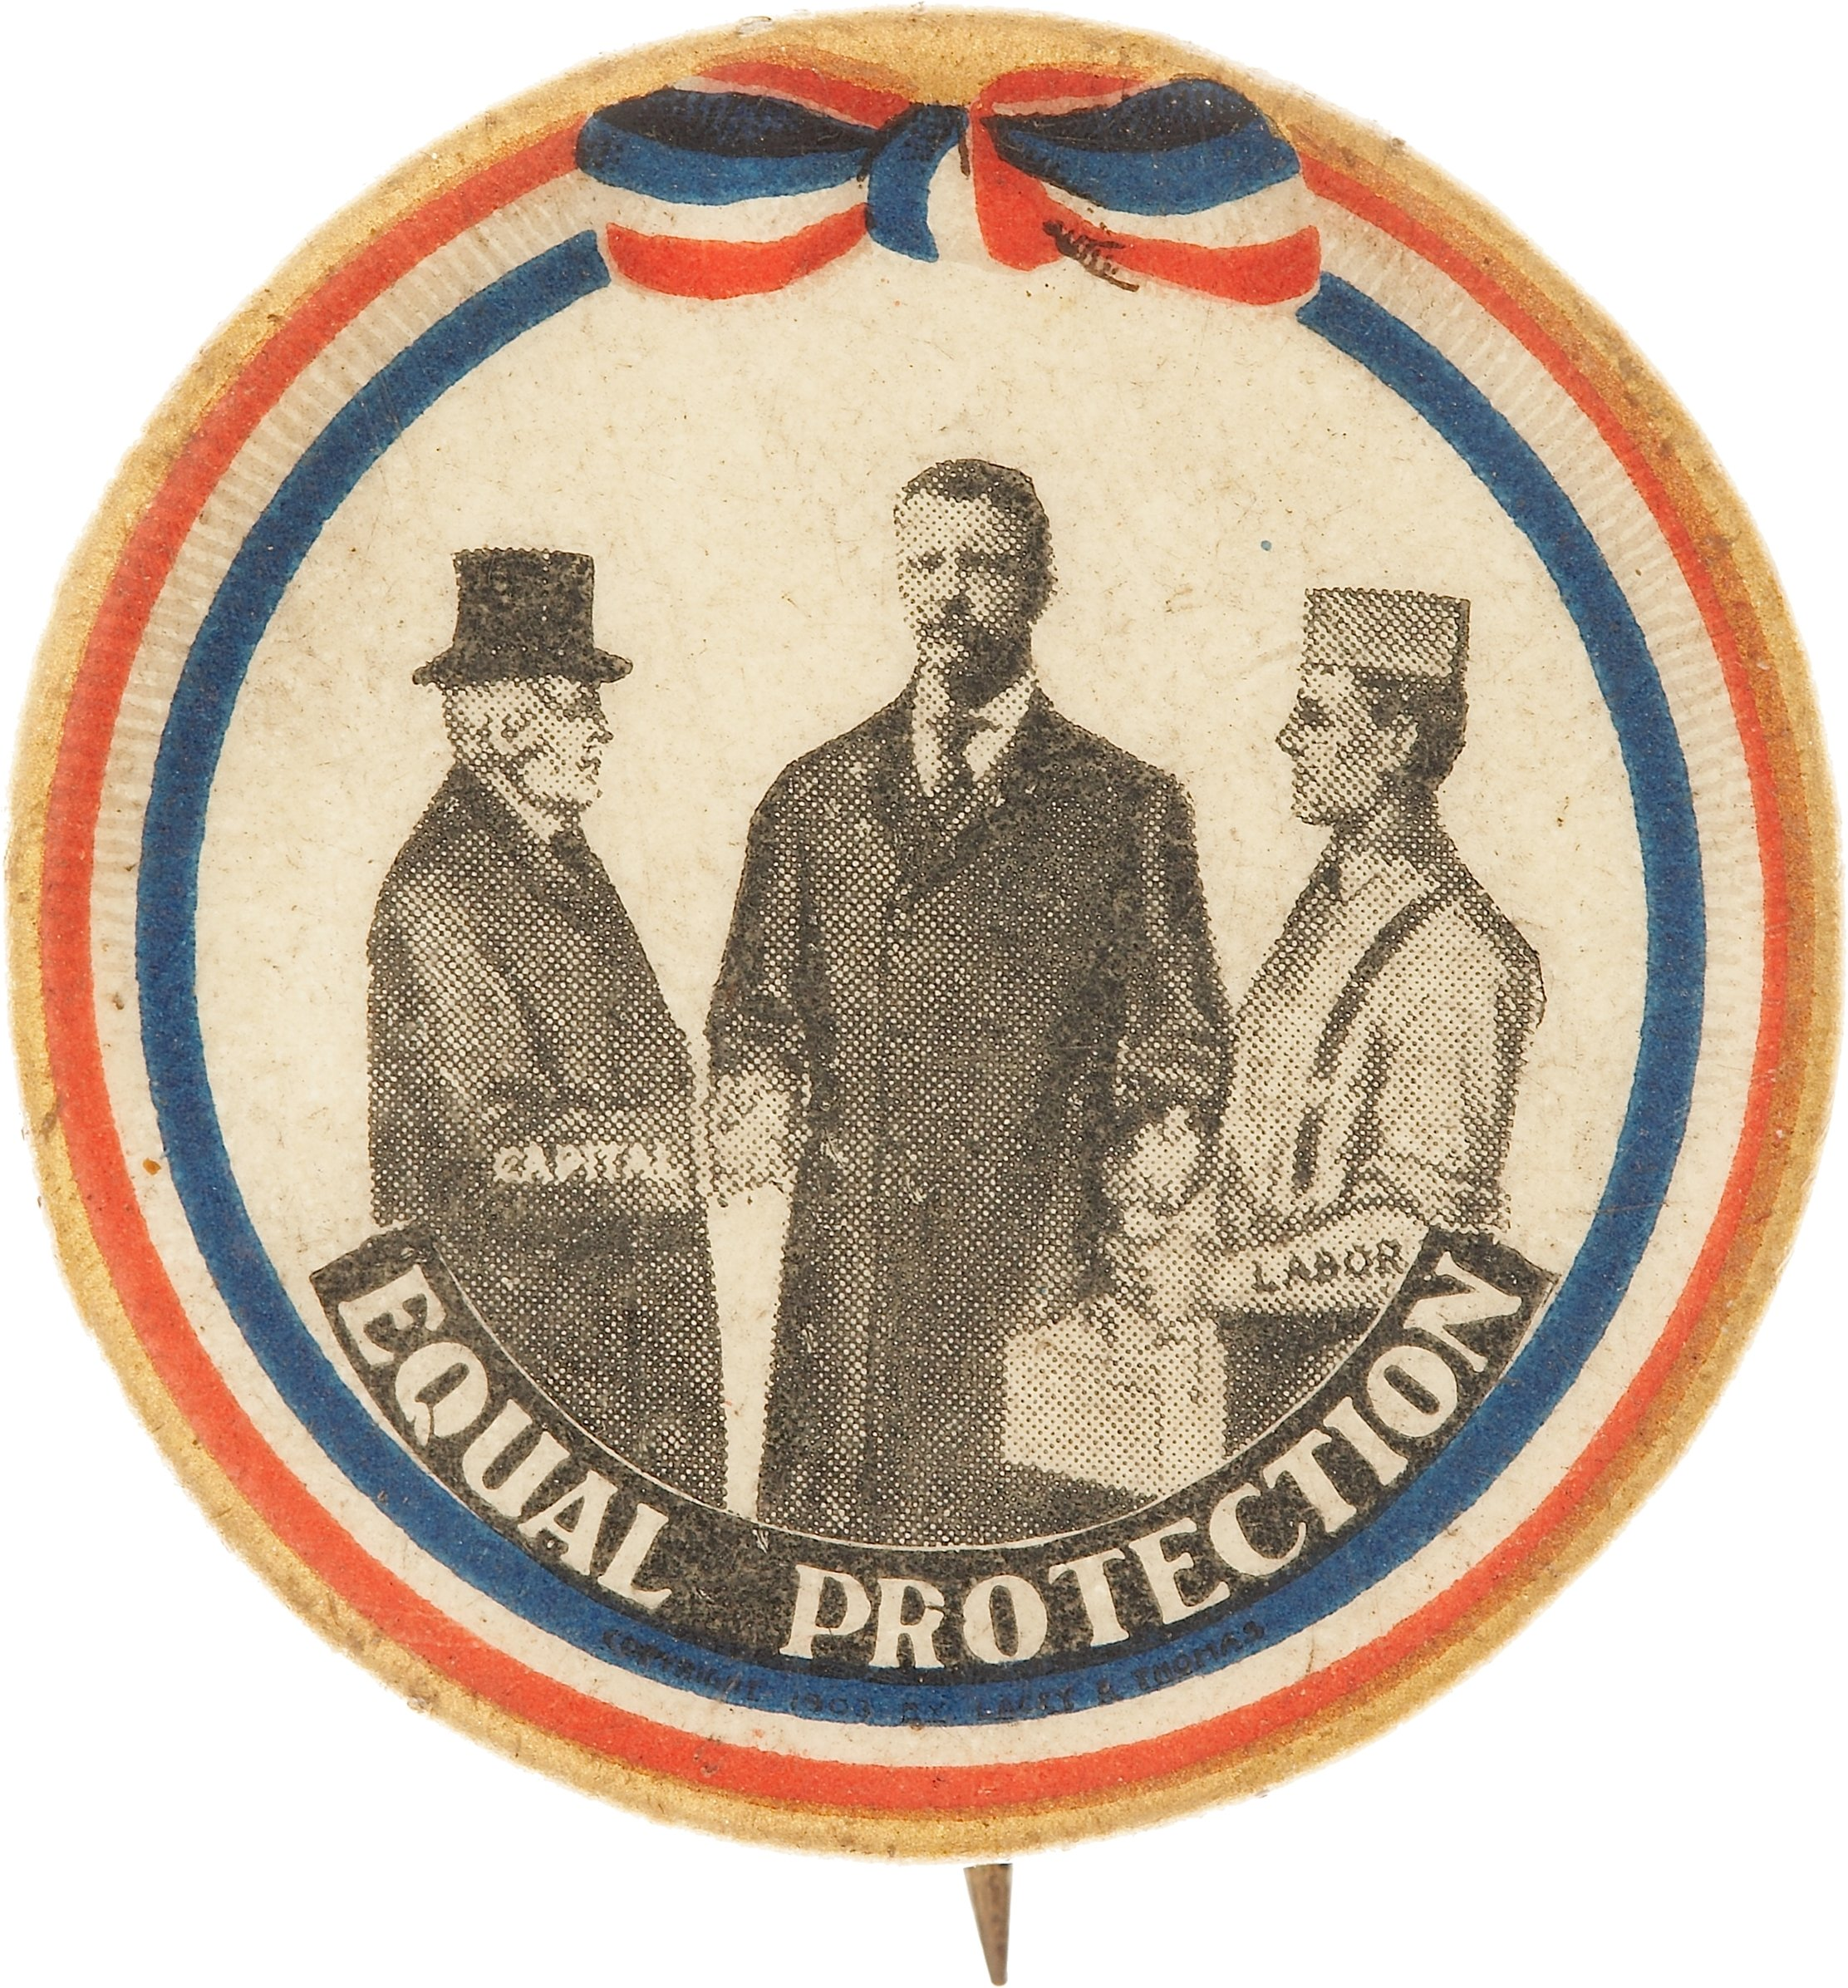 theodore-roosevelt-exceptionally-rare-type-of-equality-button